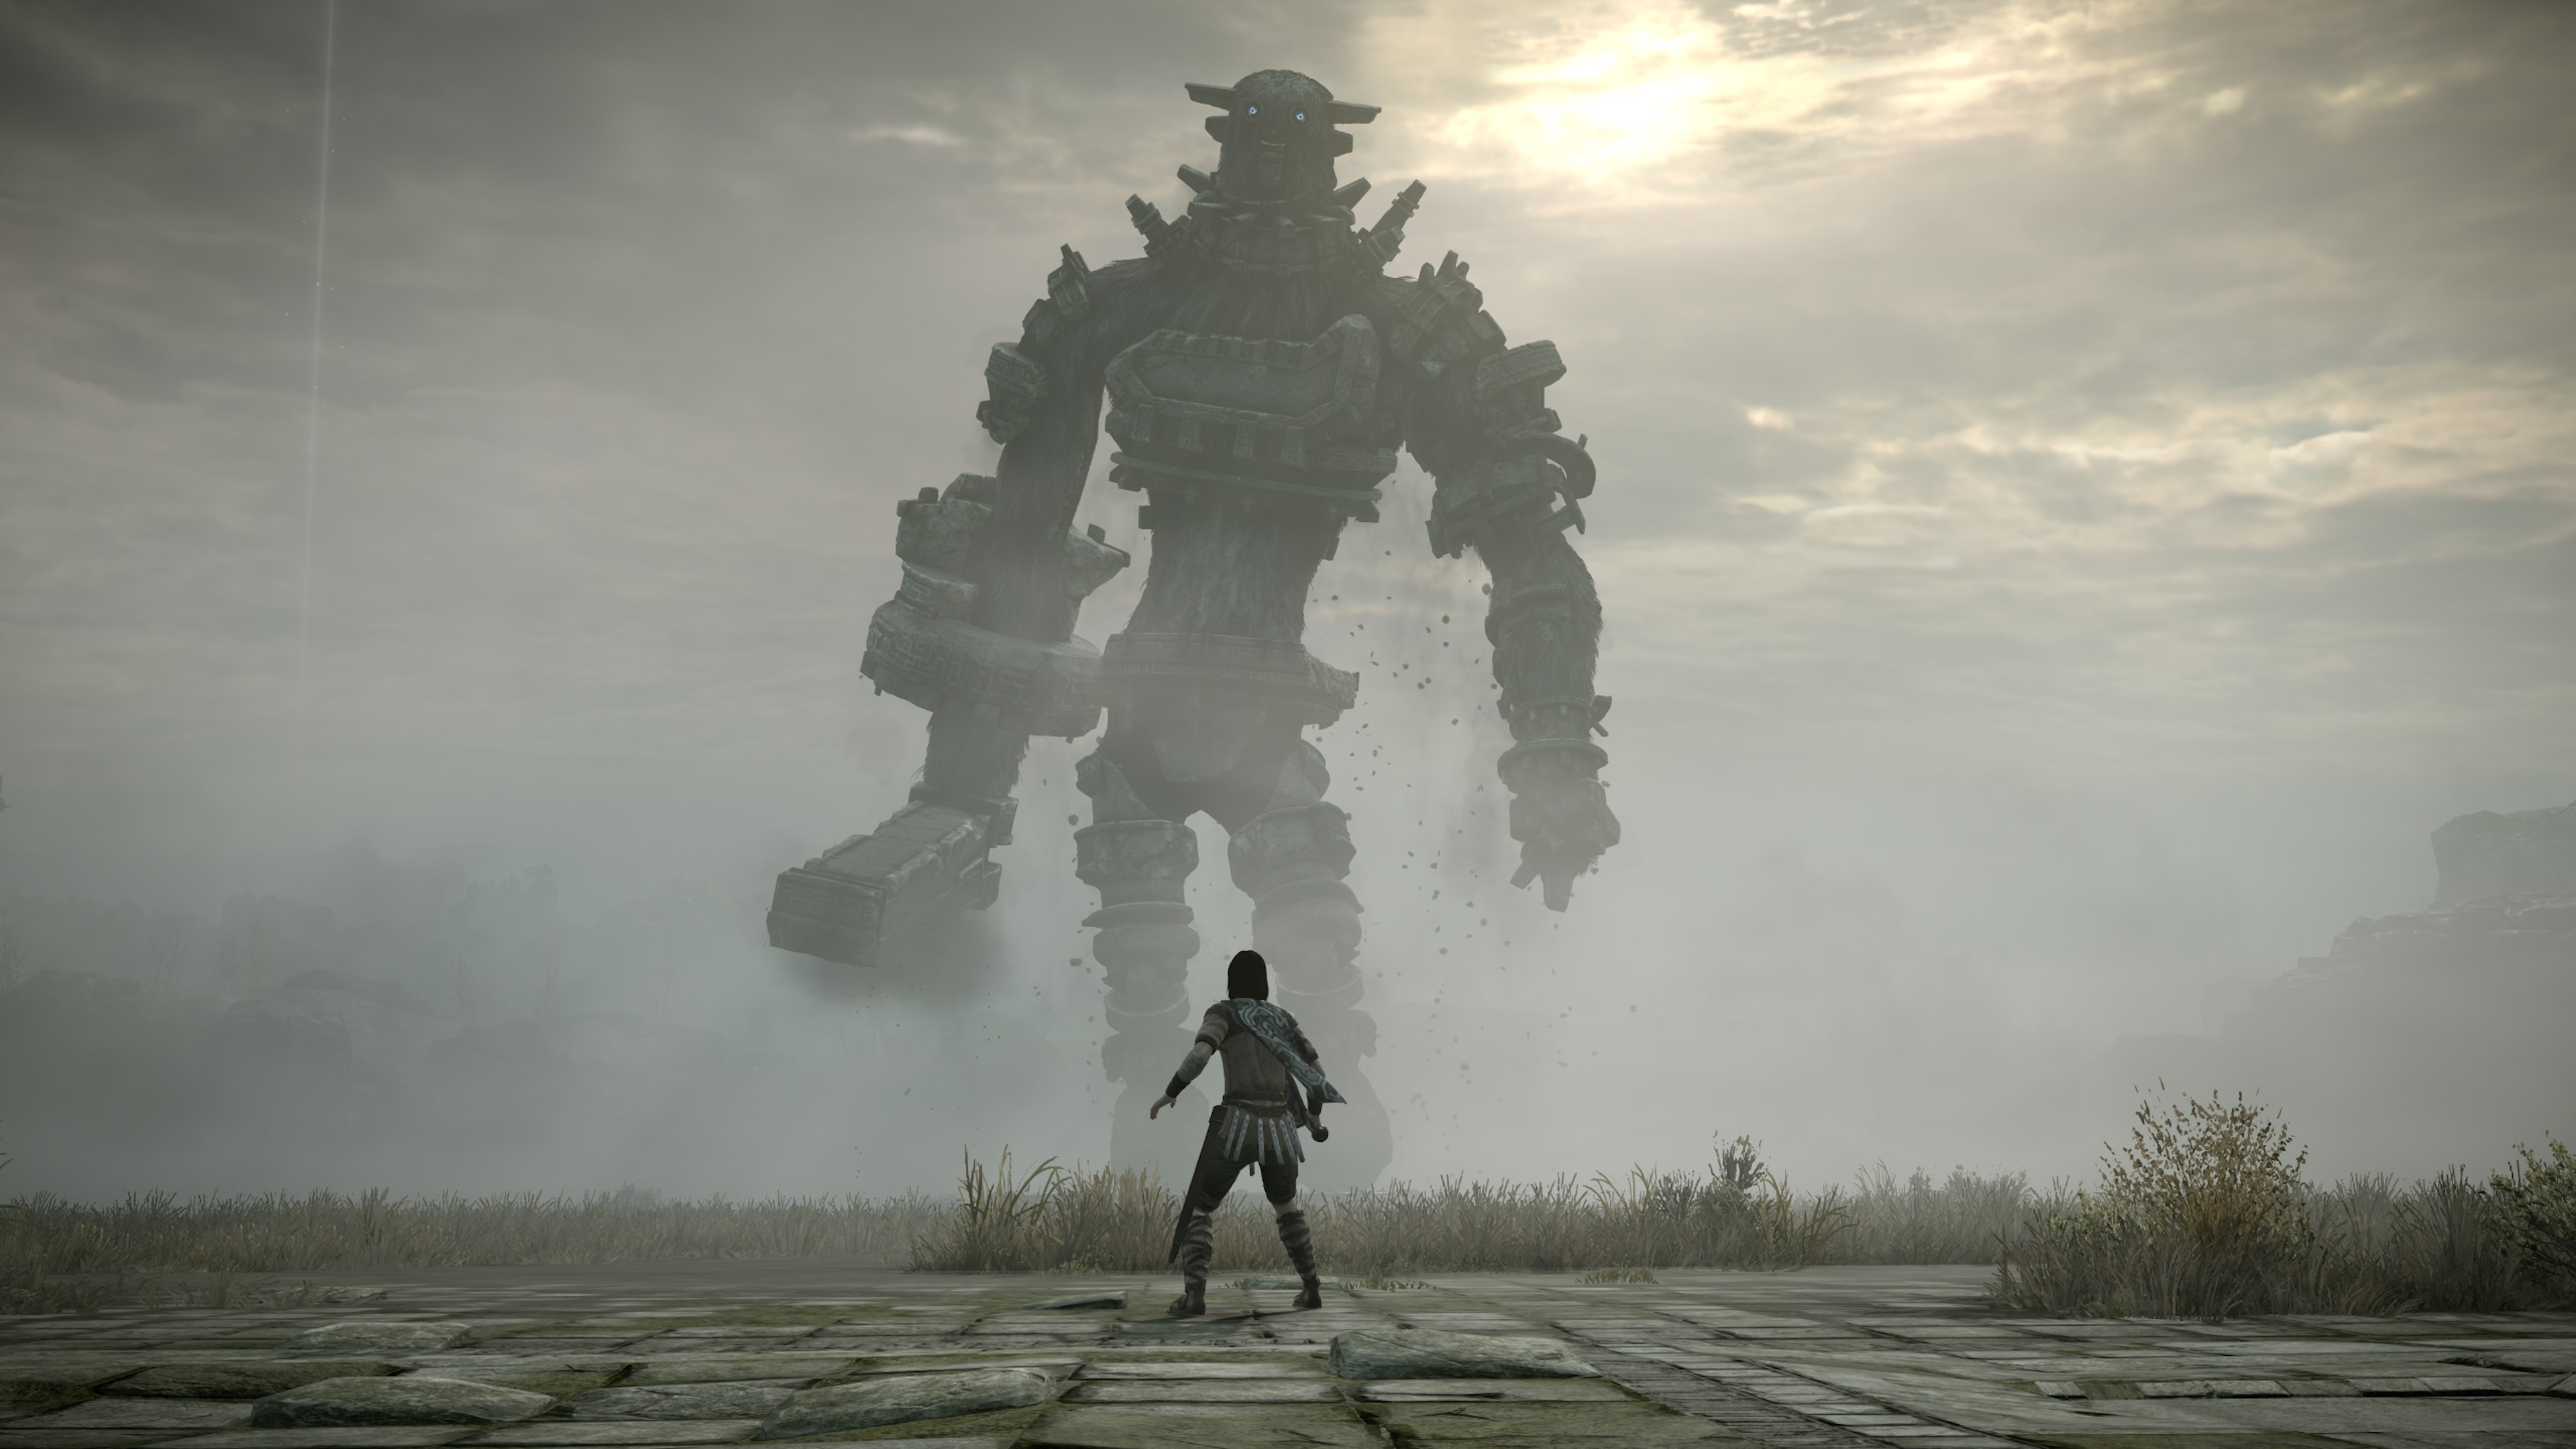 Скриншот *Shadow of the Colossus [PS4 Exclusive] 5.05 / 6.72 [EUR] (2018) [Русский/Английский] (v1.01)*